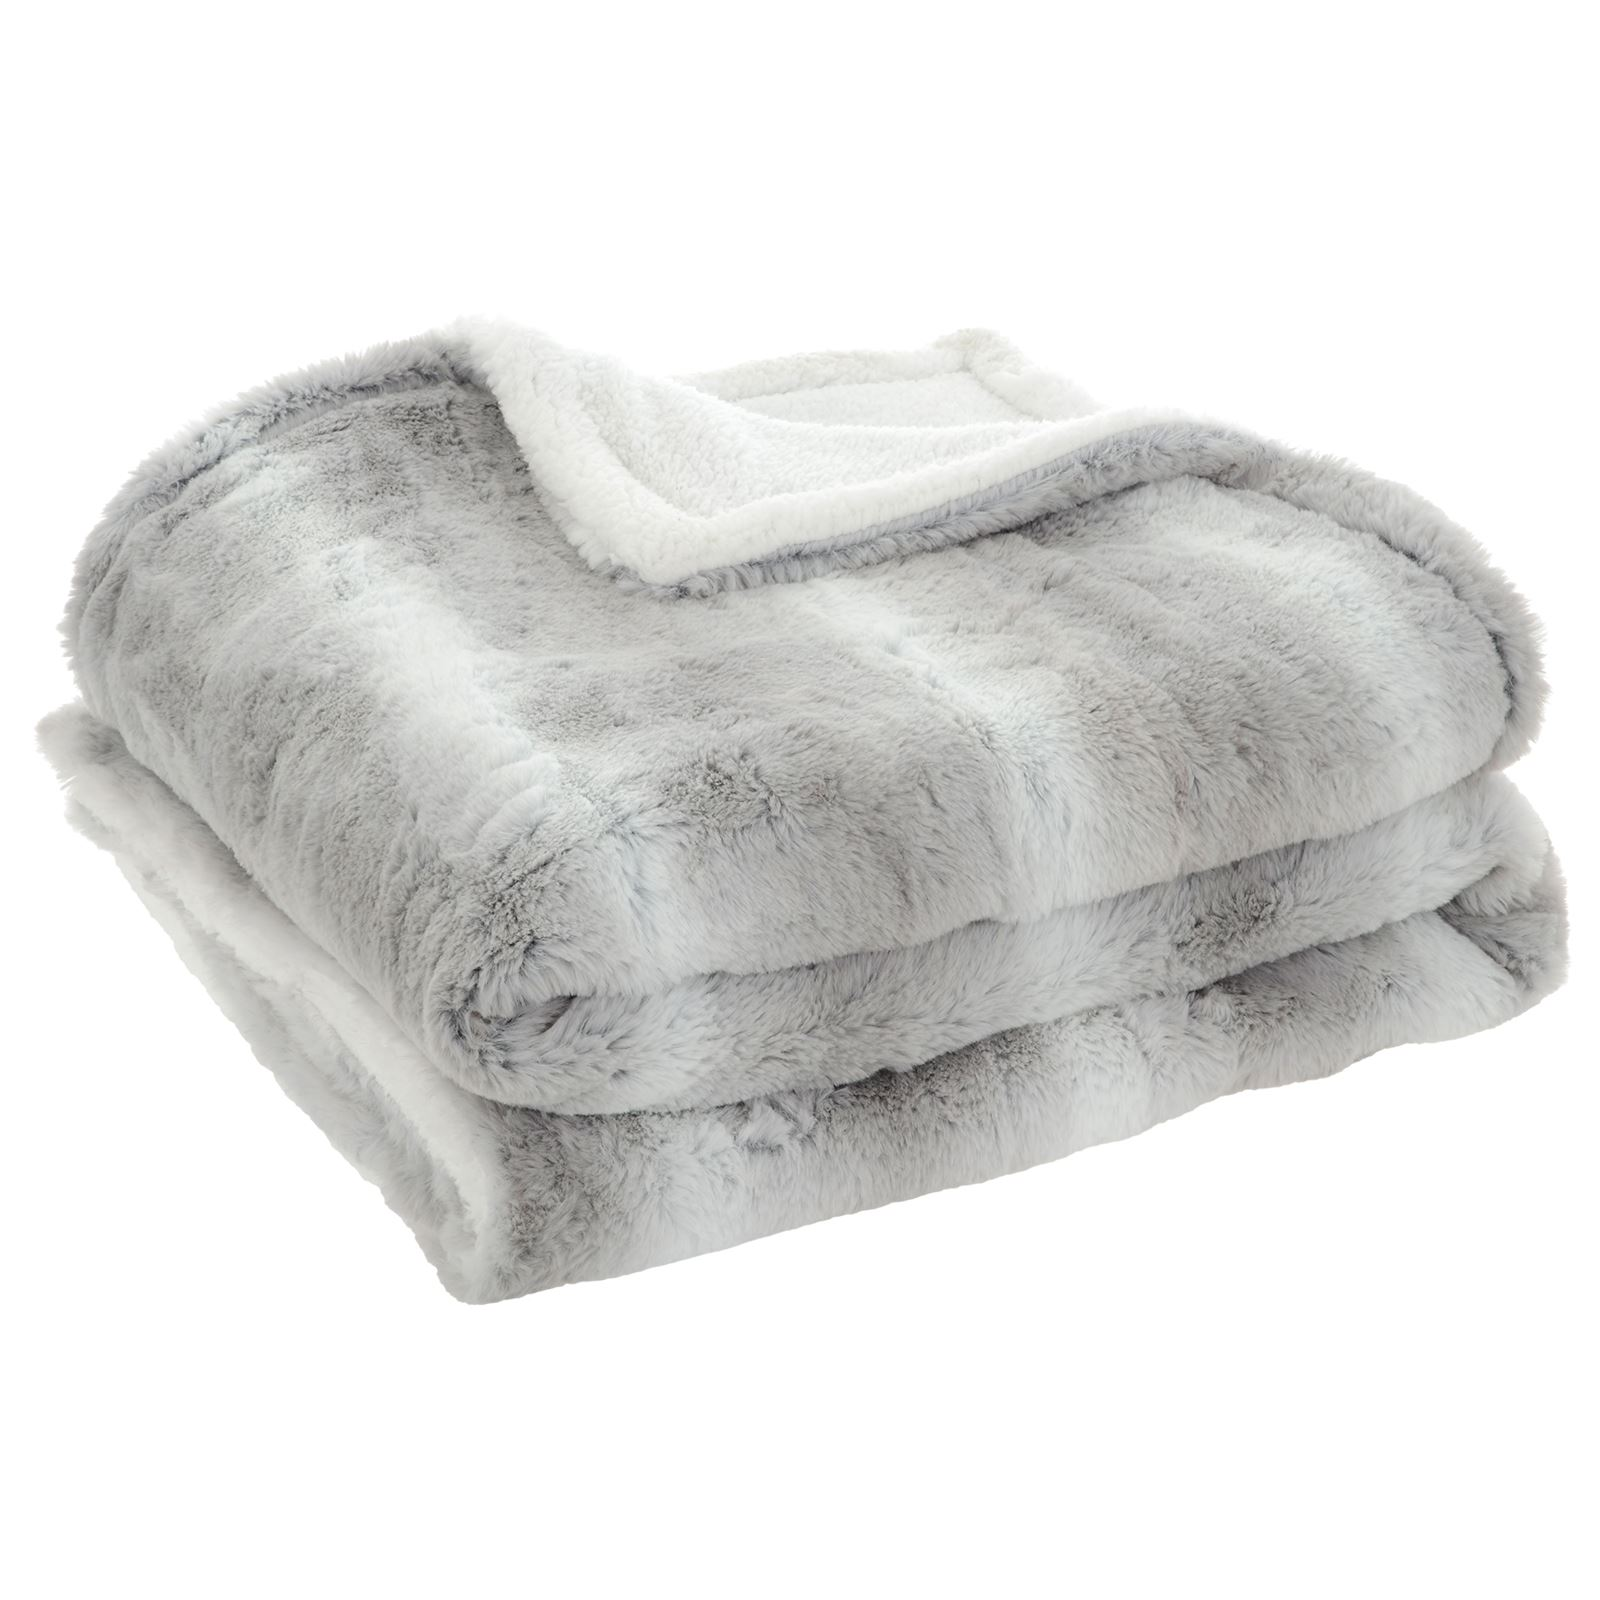 Details about Deluxe Double Layer Faux Fur Sherpa Fleece Blanket Home Sofa  Bed Throw (Grey)